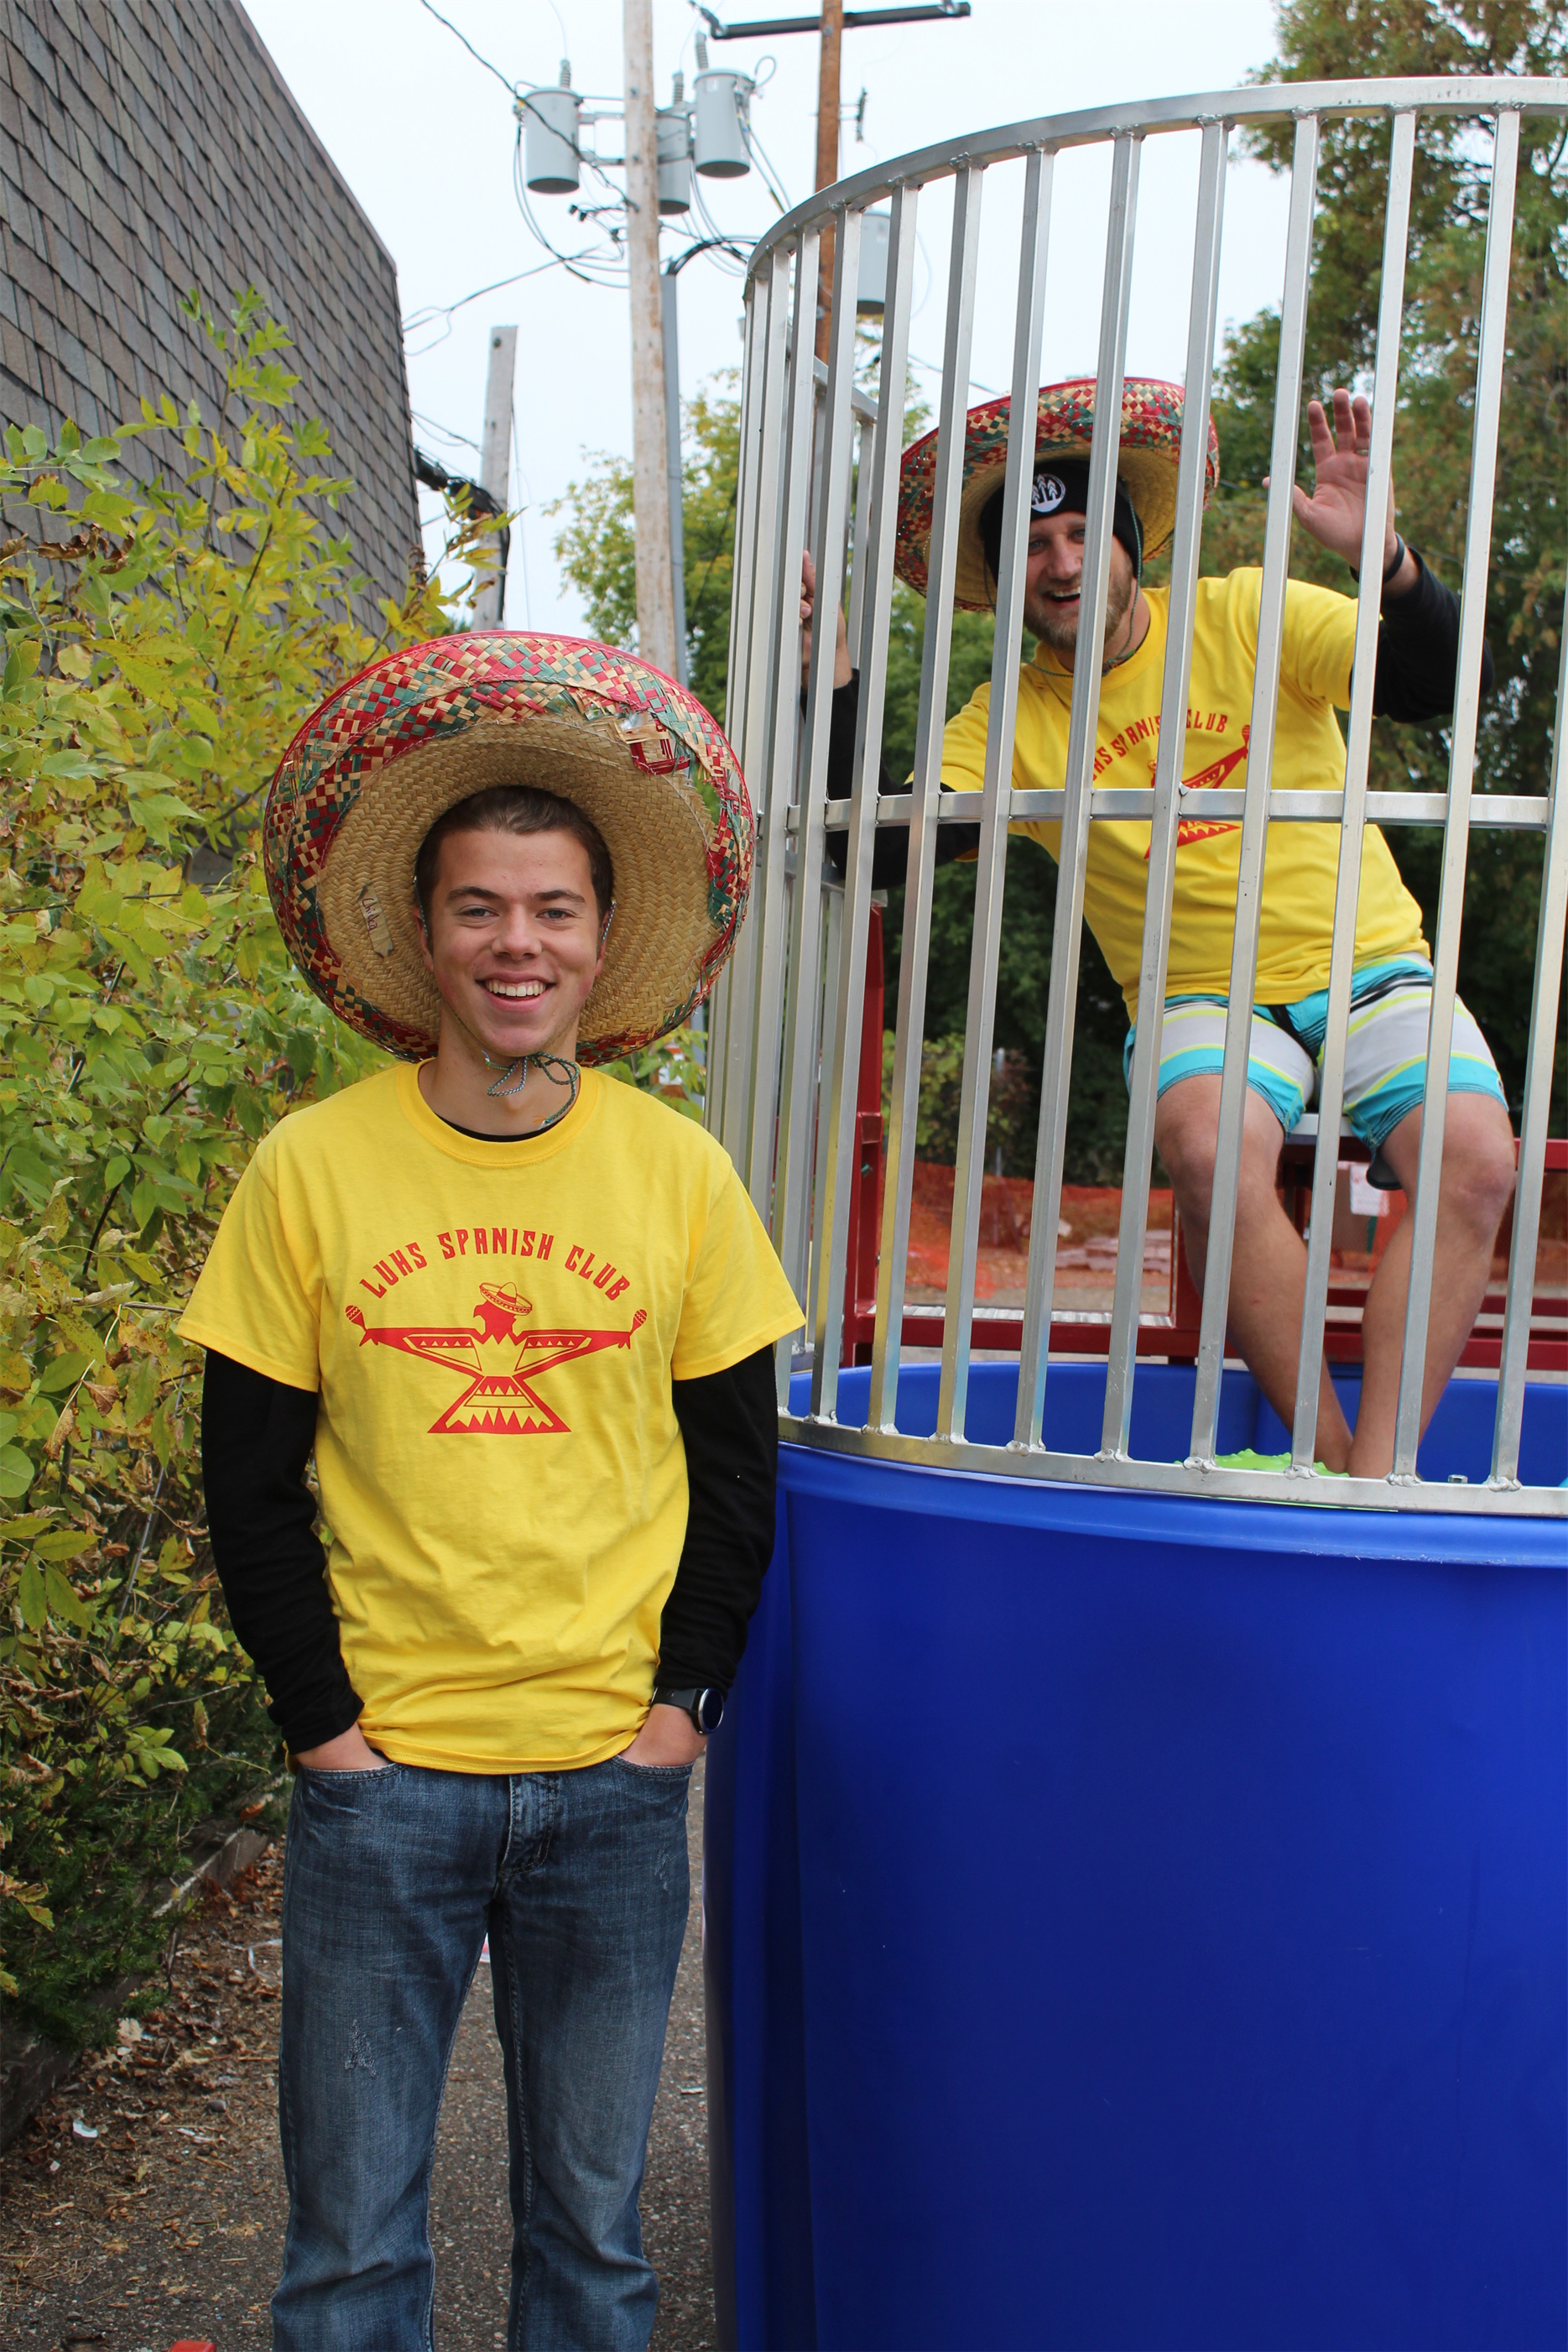 Aiden and Mr. Bremmer volunteer at the dunk tank for the Lakeland Spanish Club Fundraiser in Minocqua. Kim Johnson photo